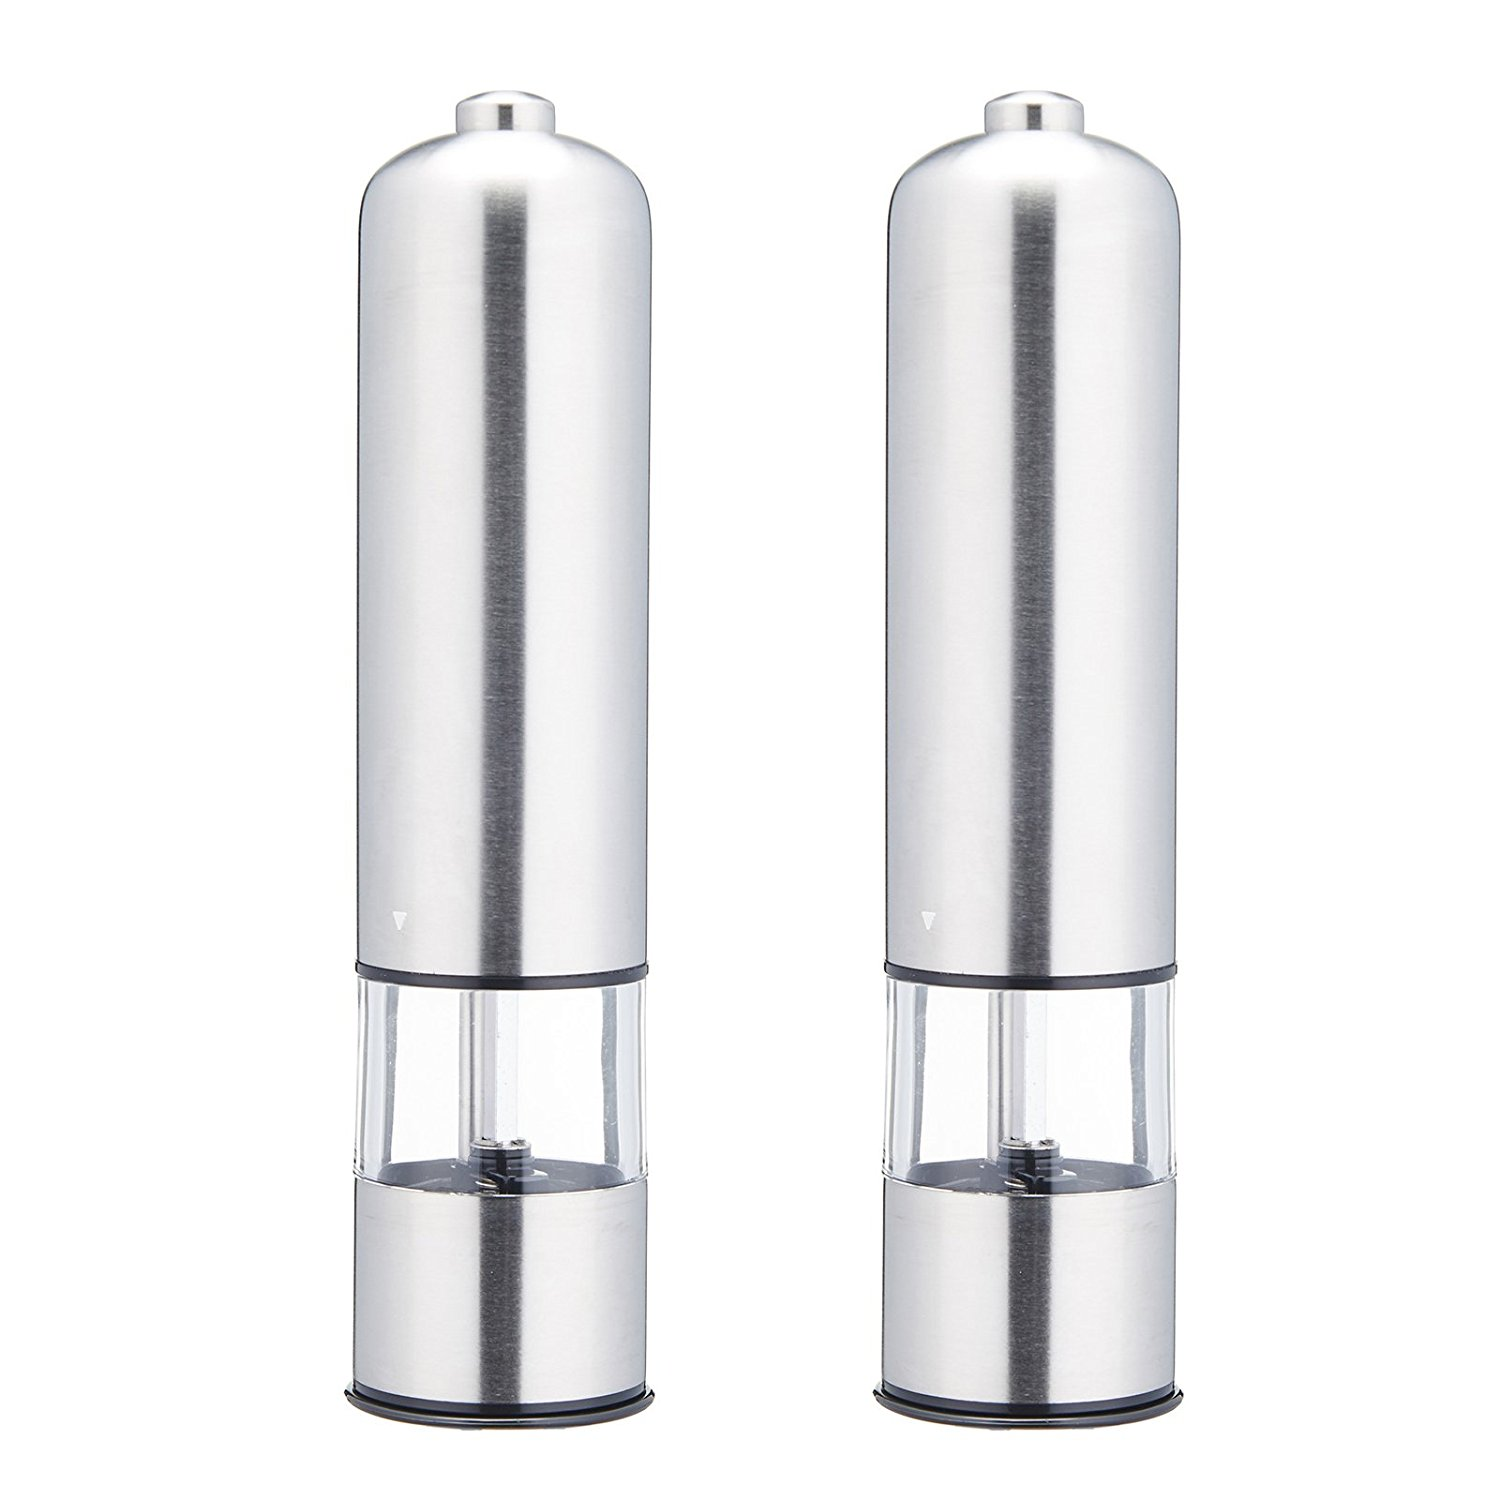 2 Pack Electric Stainless SteelGourmet Salt Pepper Mill Grinder Muller With Light by EPG